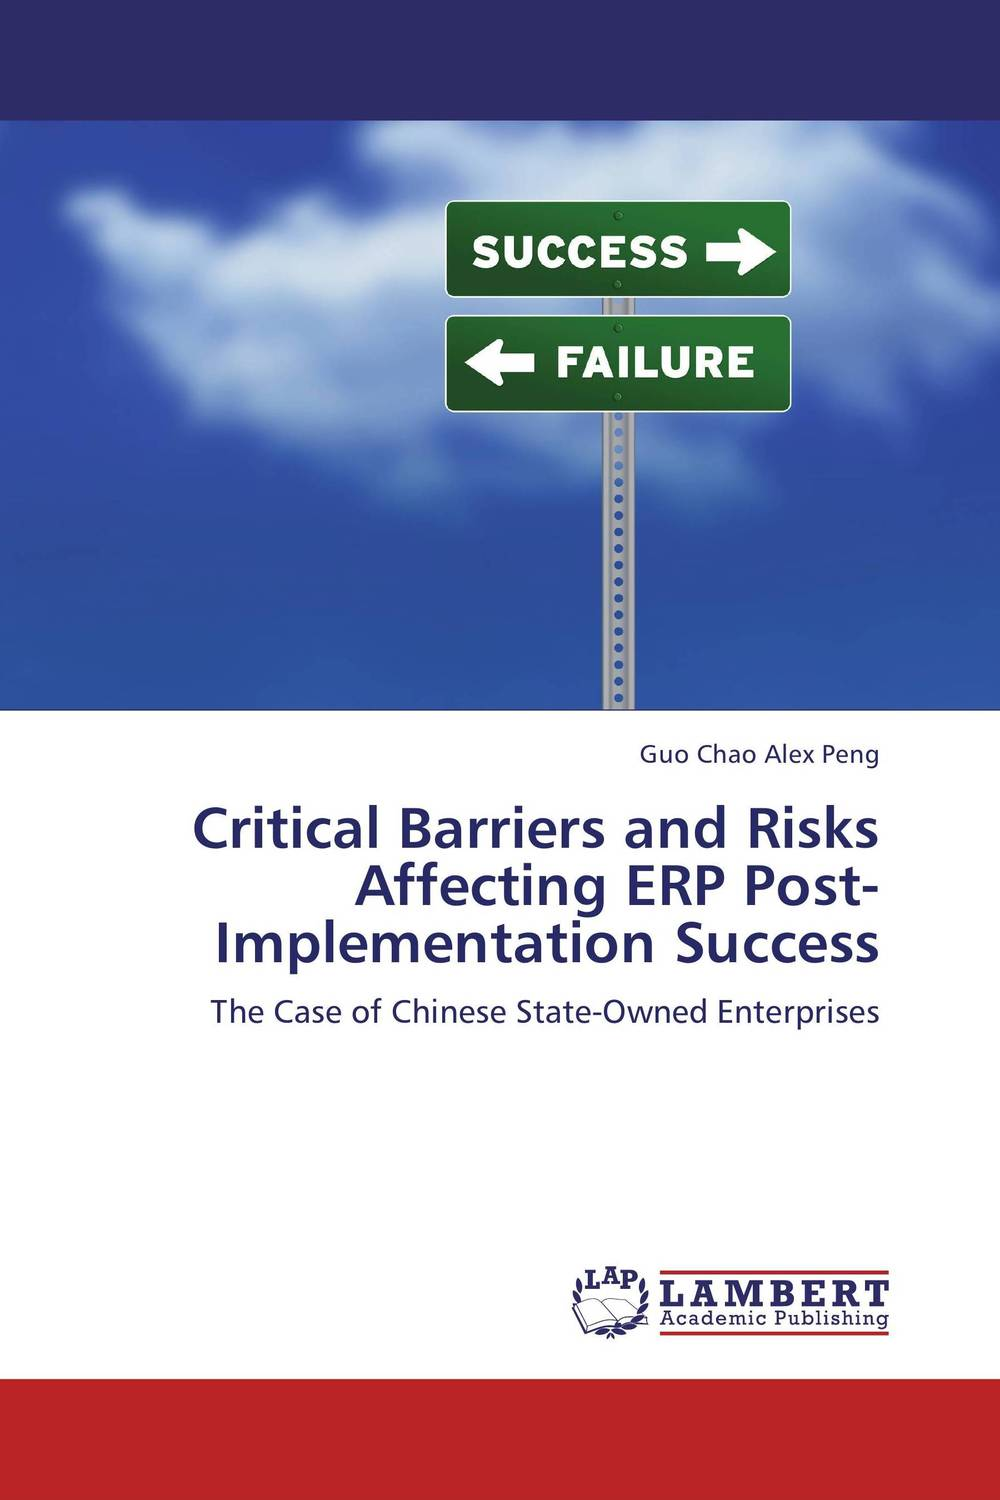 Critical Barriers and Risks Affecting ERP Post-Implementation Success цена и фото